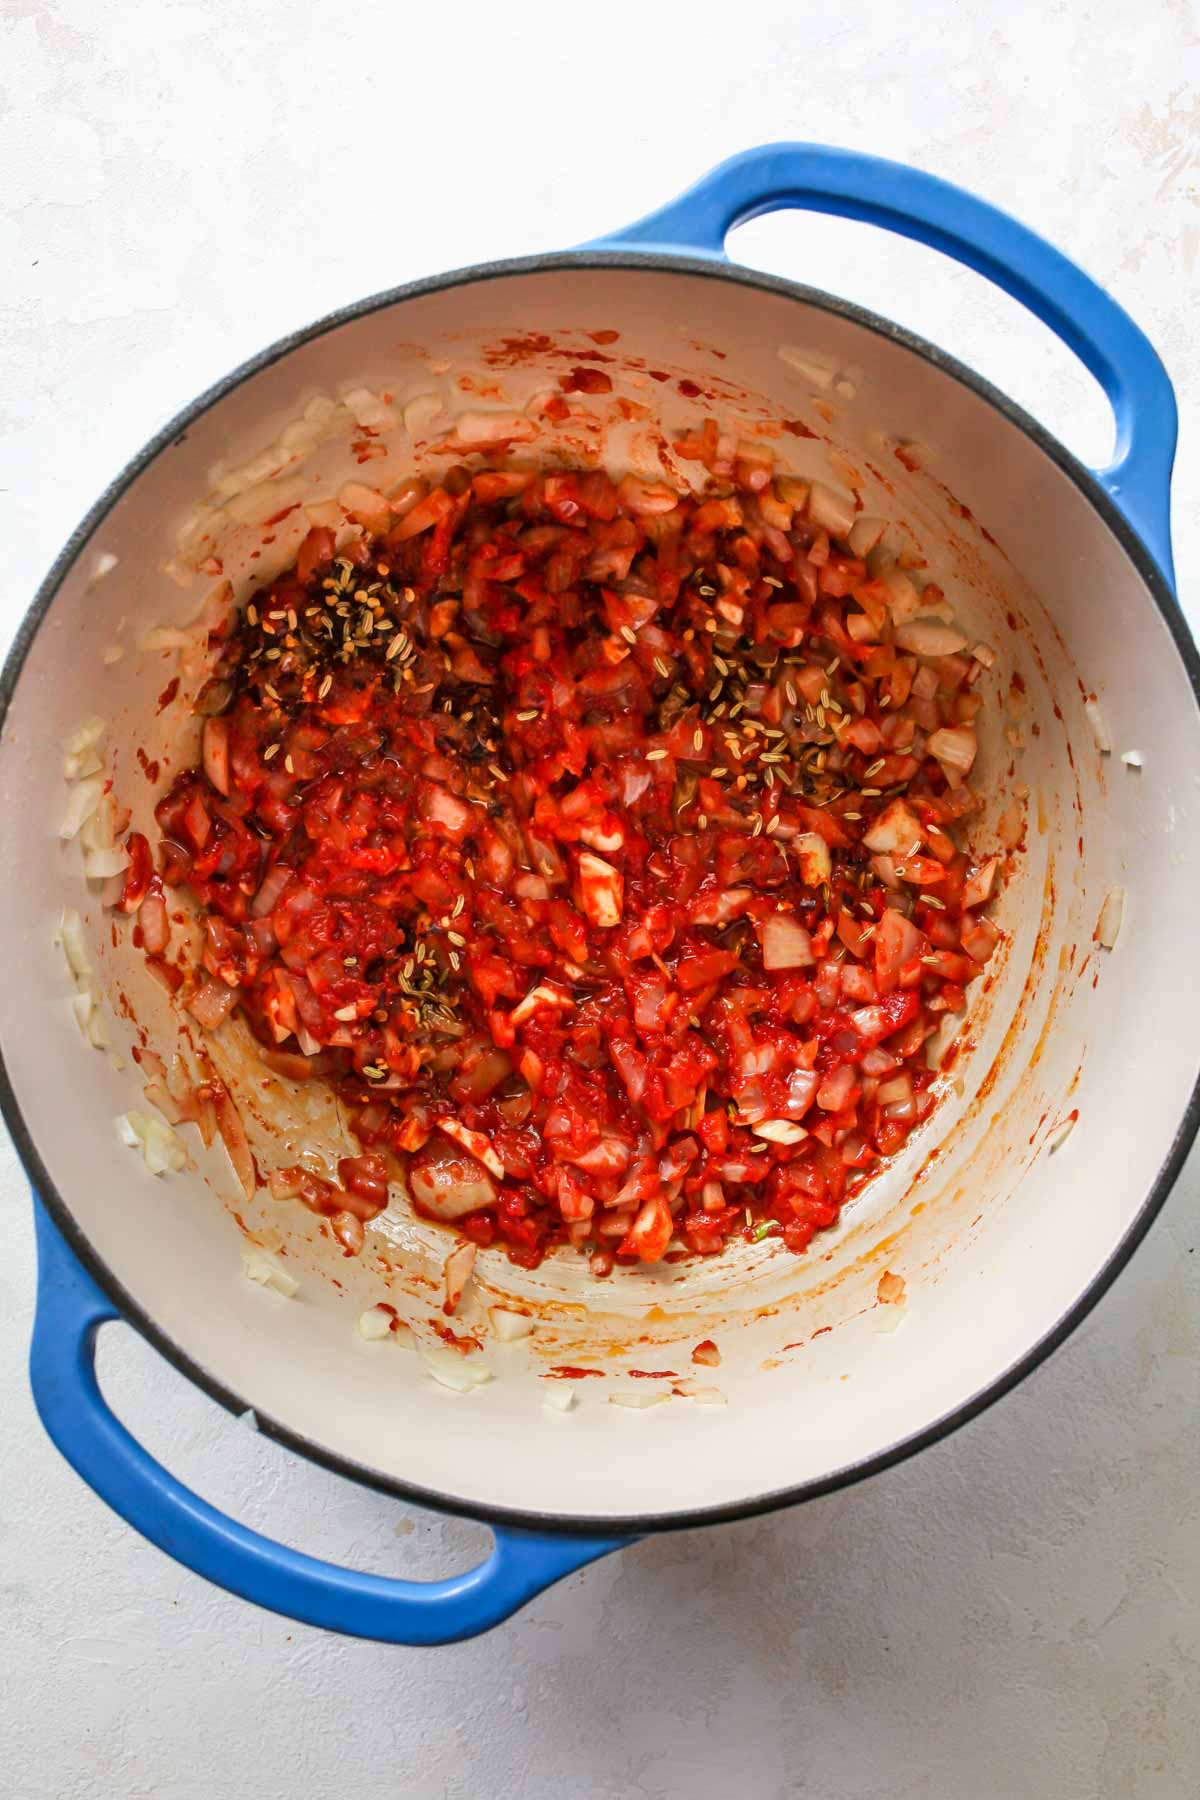 Onions, garlic, and tomato paste being simmered in a pot